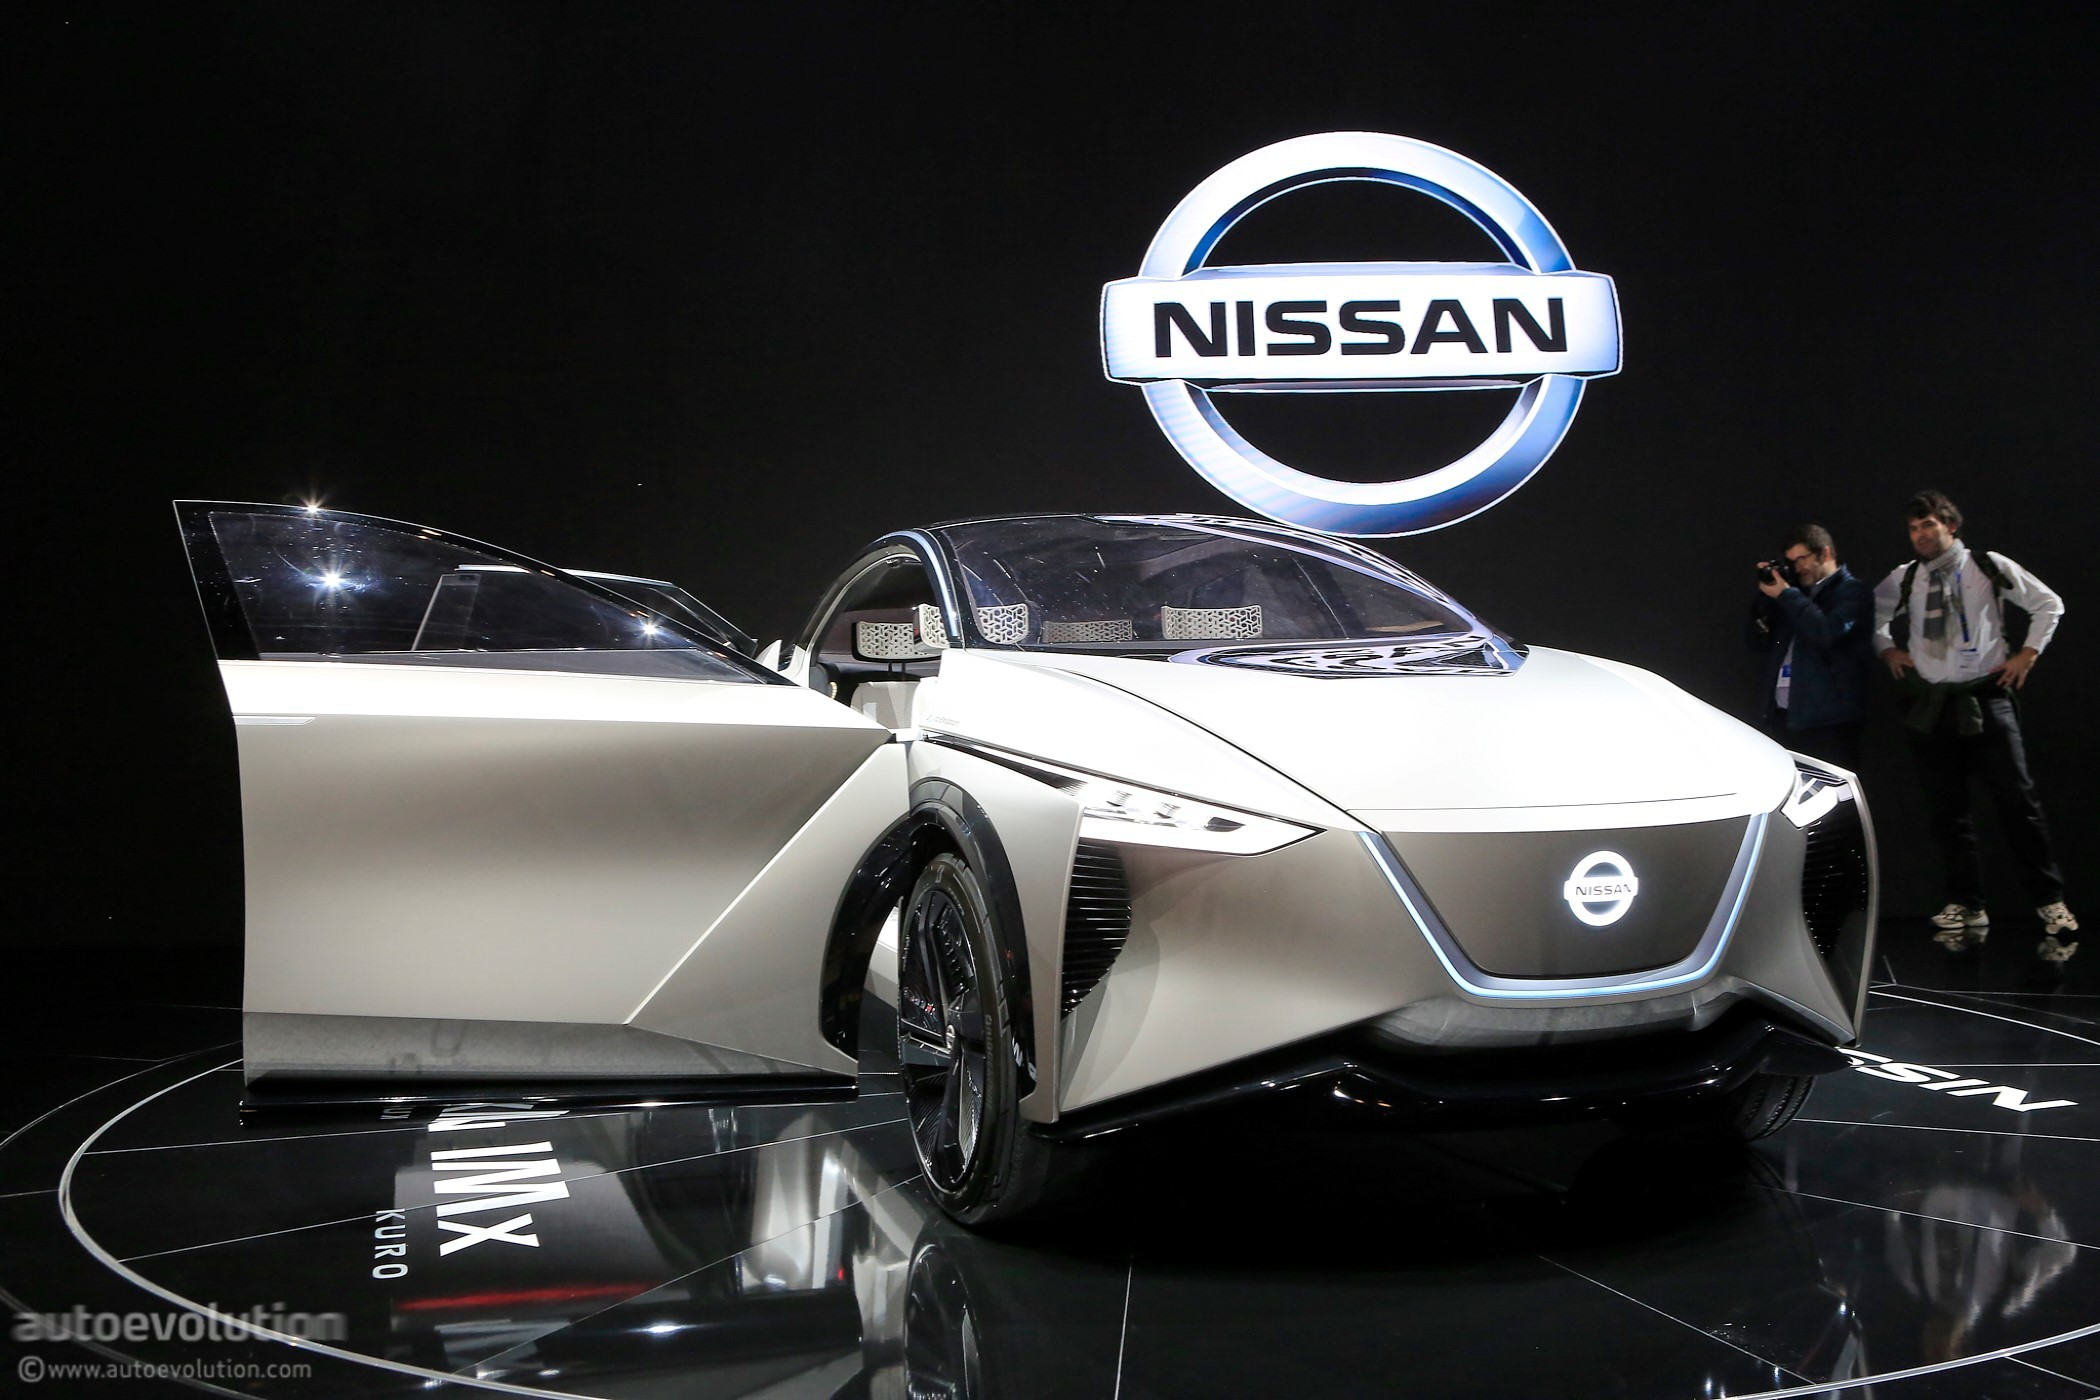 Anticipated $0.71 EPS for Nissan Motor Co., Ltd. (NSANY) on May, 10